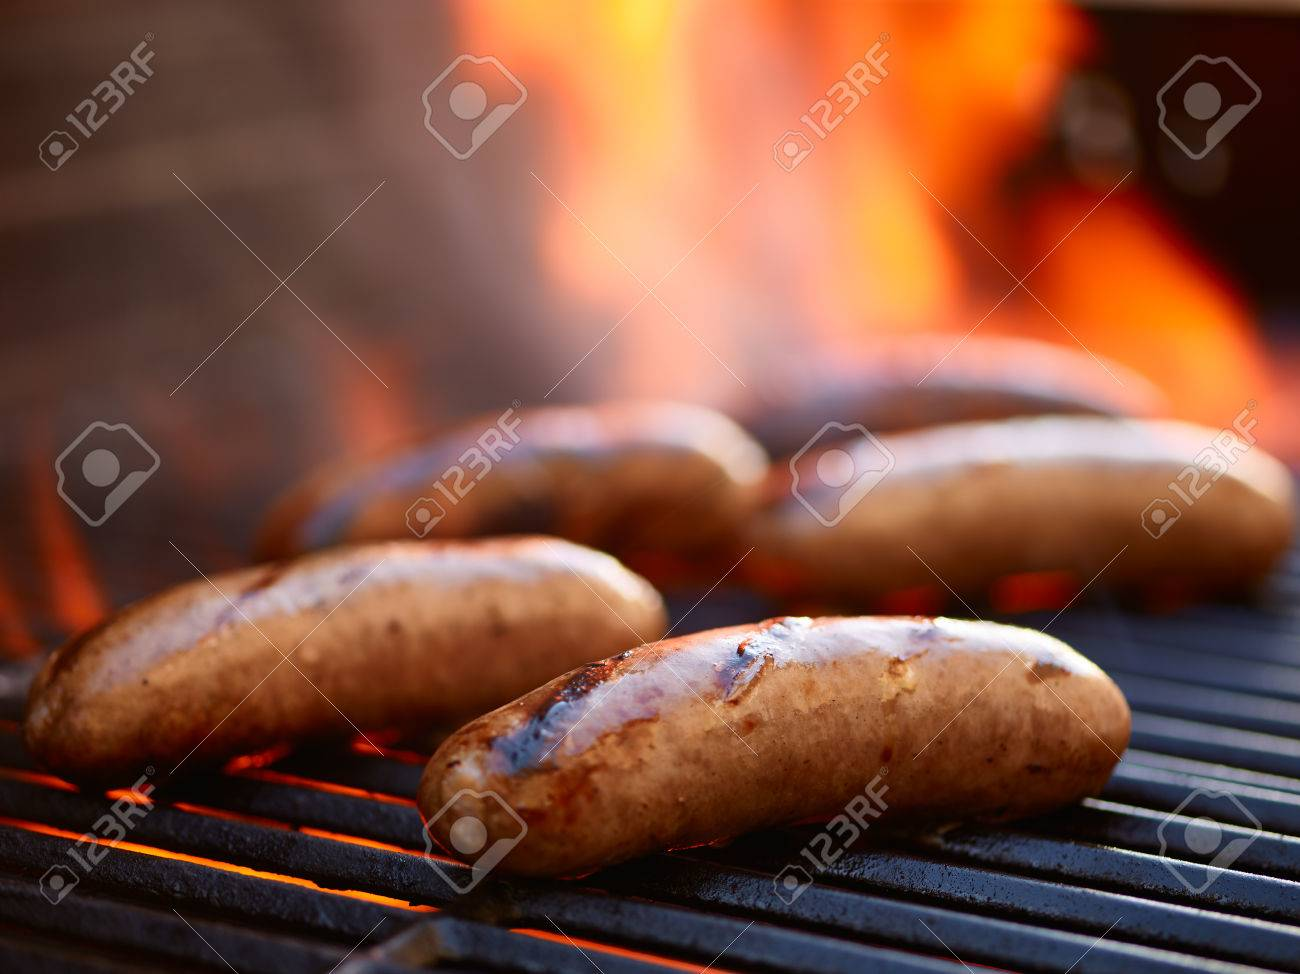 grilling bratwurst sausages over flaming grill - 55030127